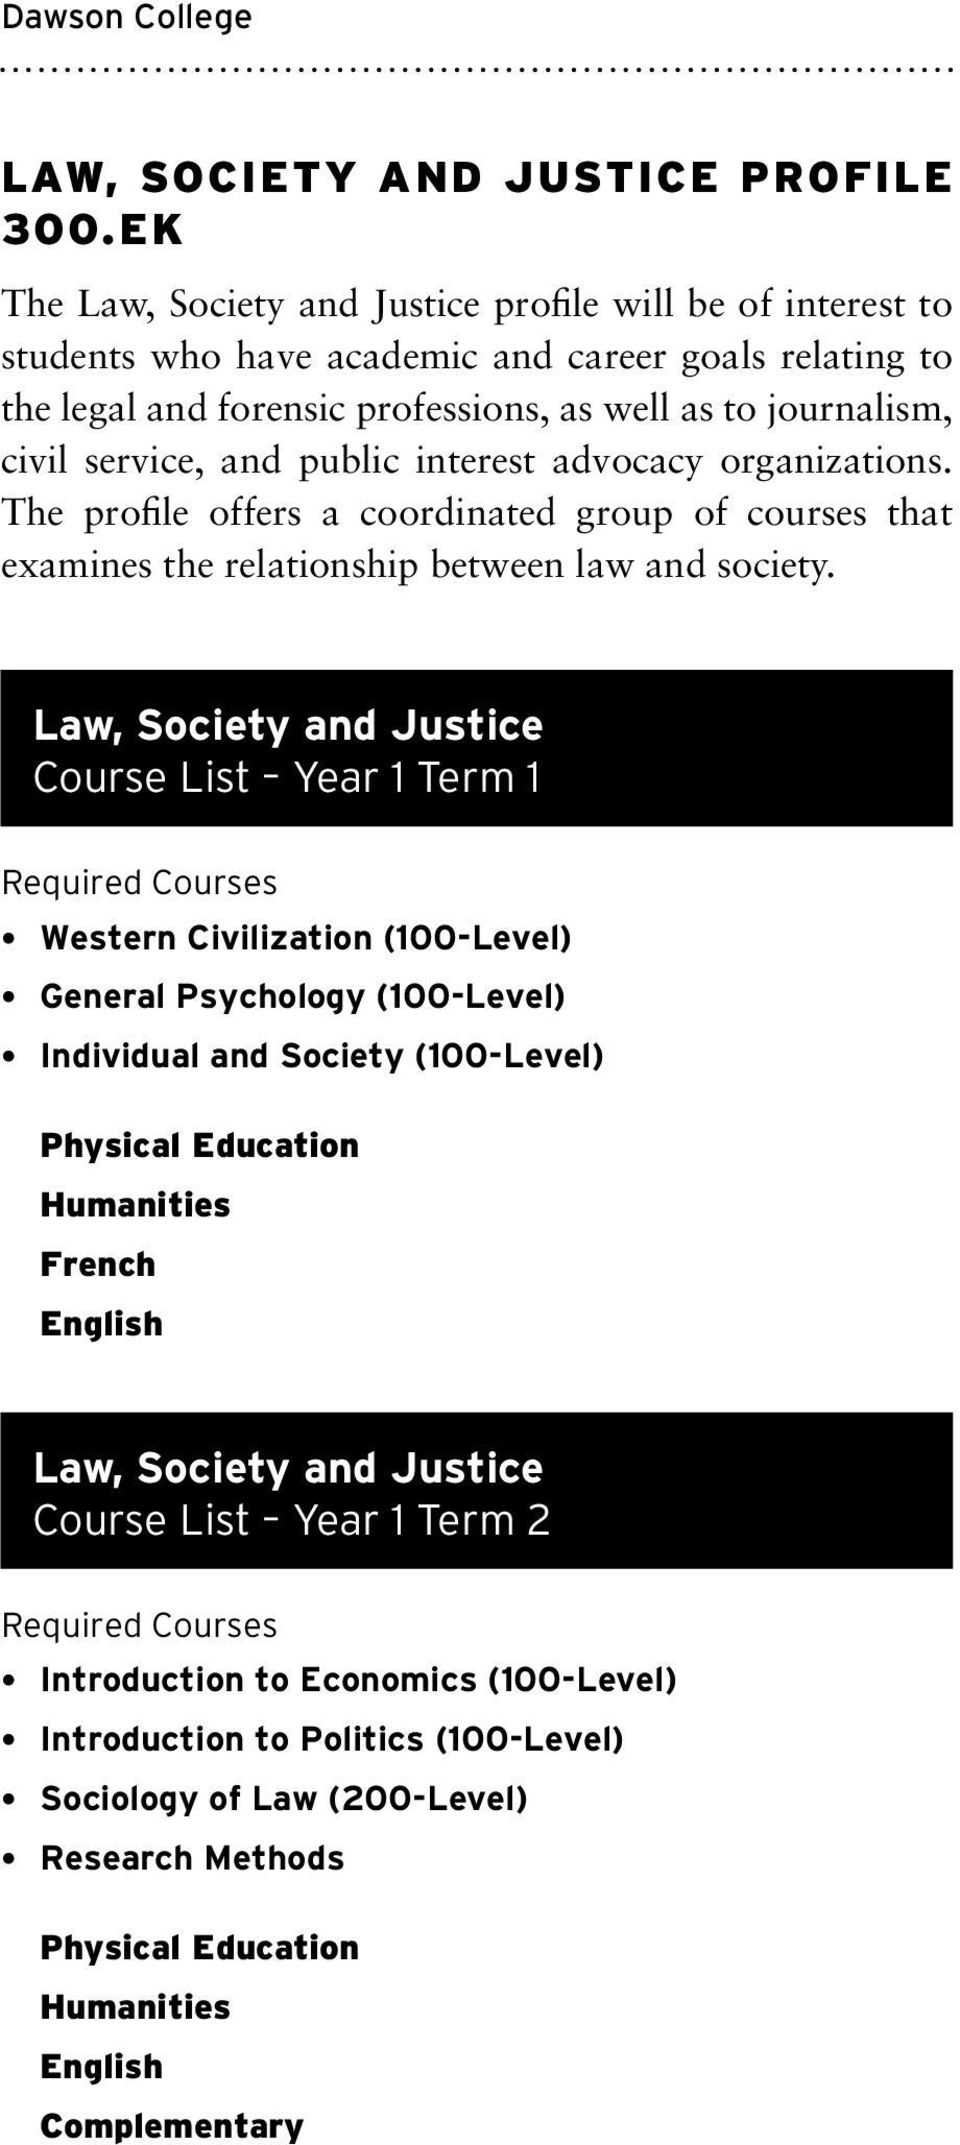 journalism, civil service, and public interest advocacy organizations. The profile offers a coordinated group of courses that examines the relationship between law and society.